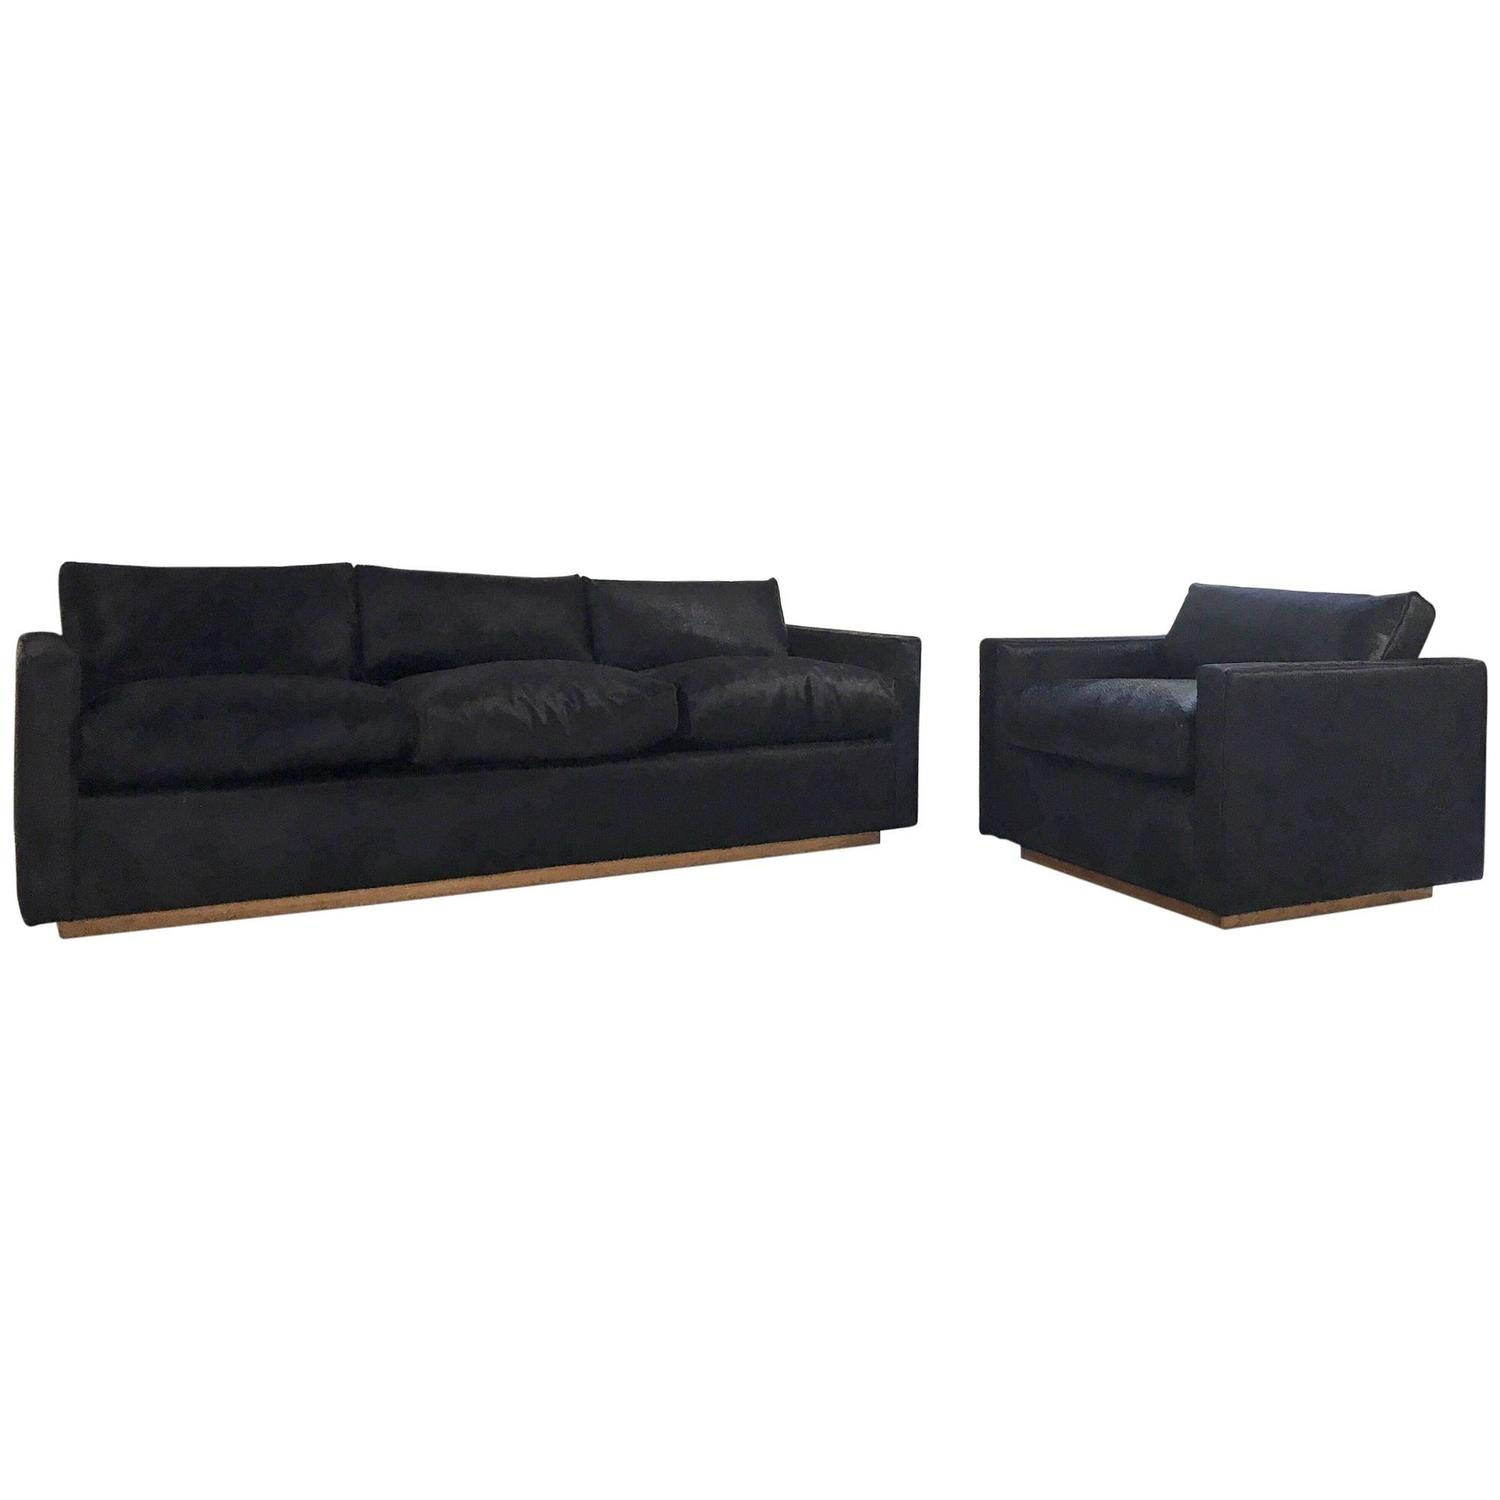 One of a kind midcentury sofa and chair in natural black brazilian cowhide at 1stdibs - Brazilian mid century modern furniture ...